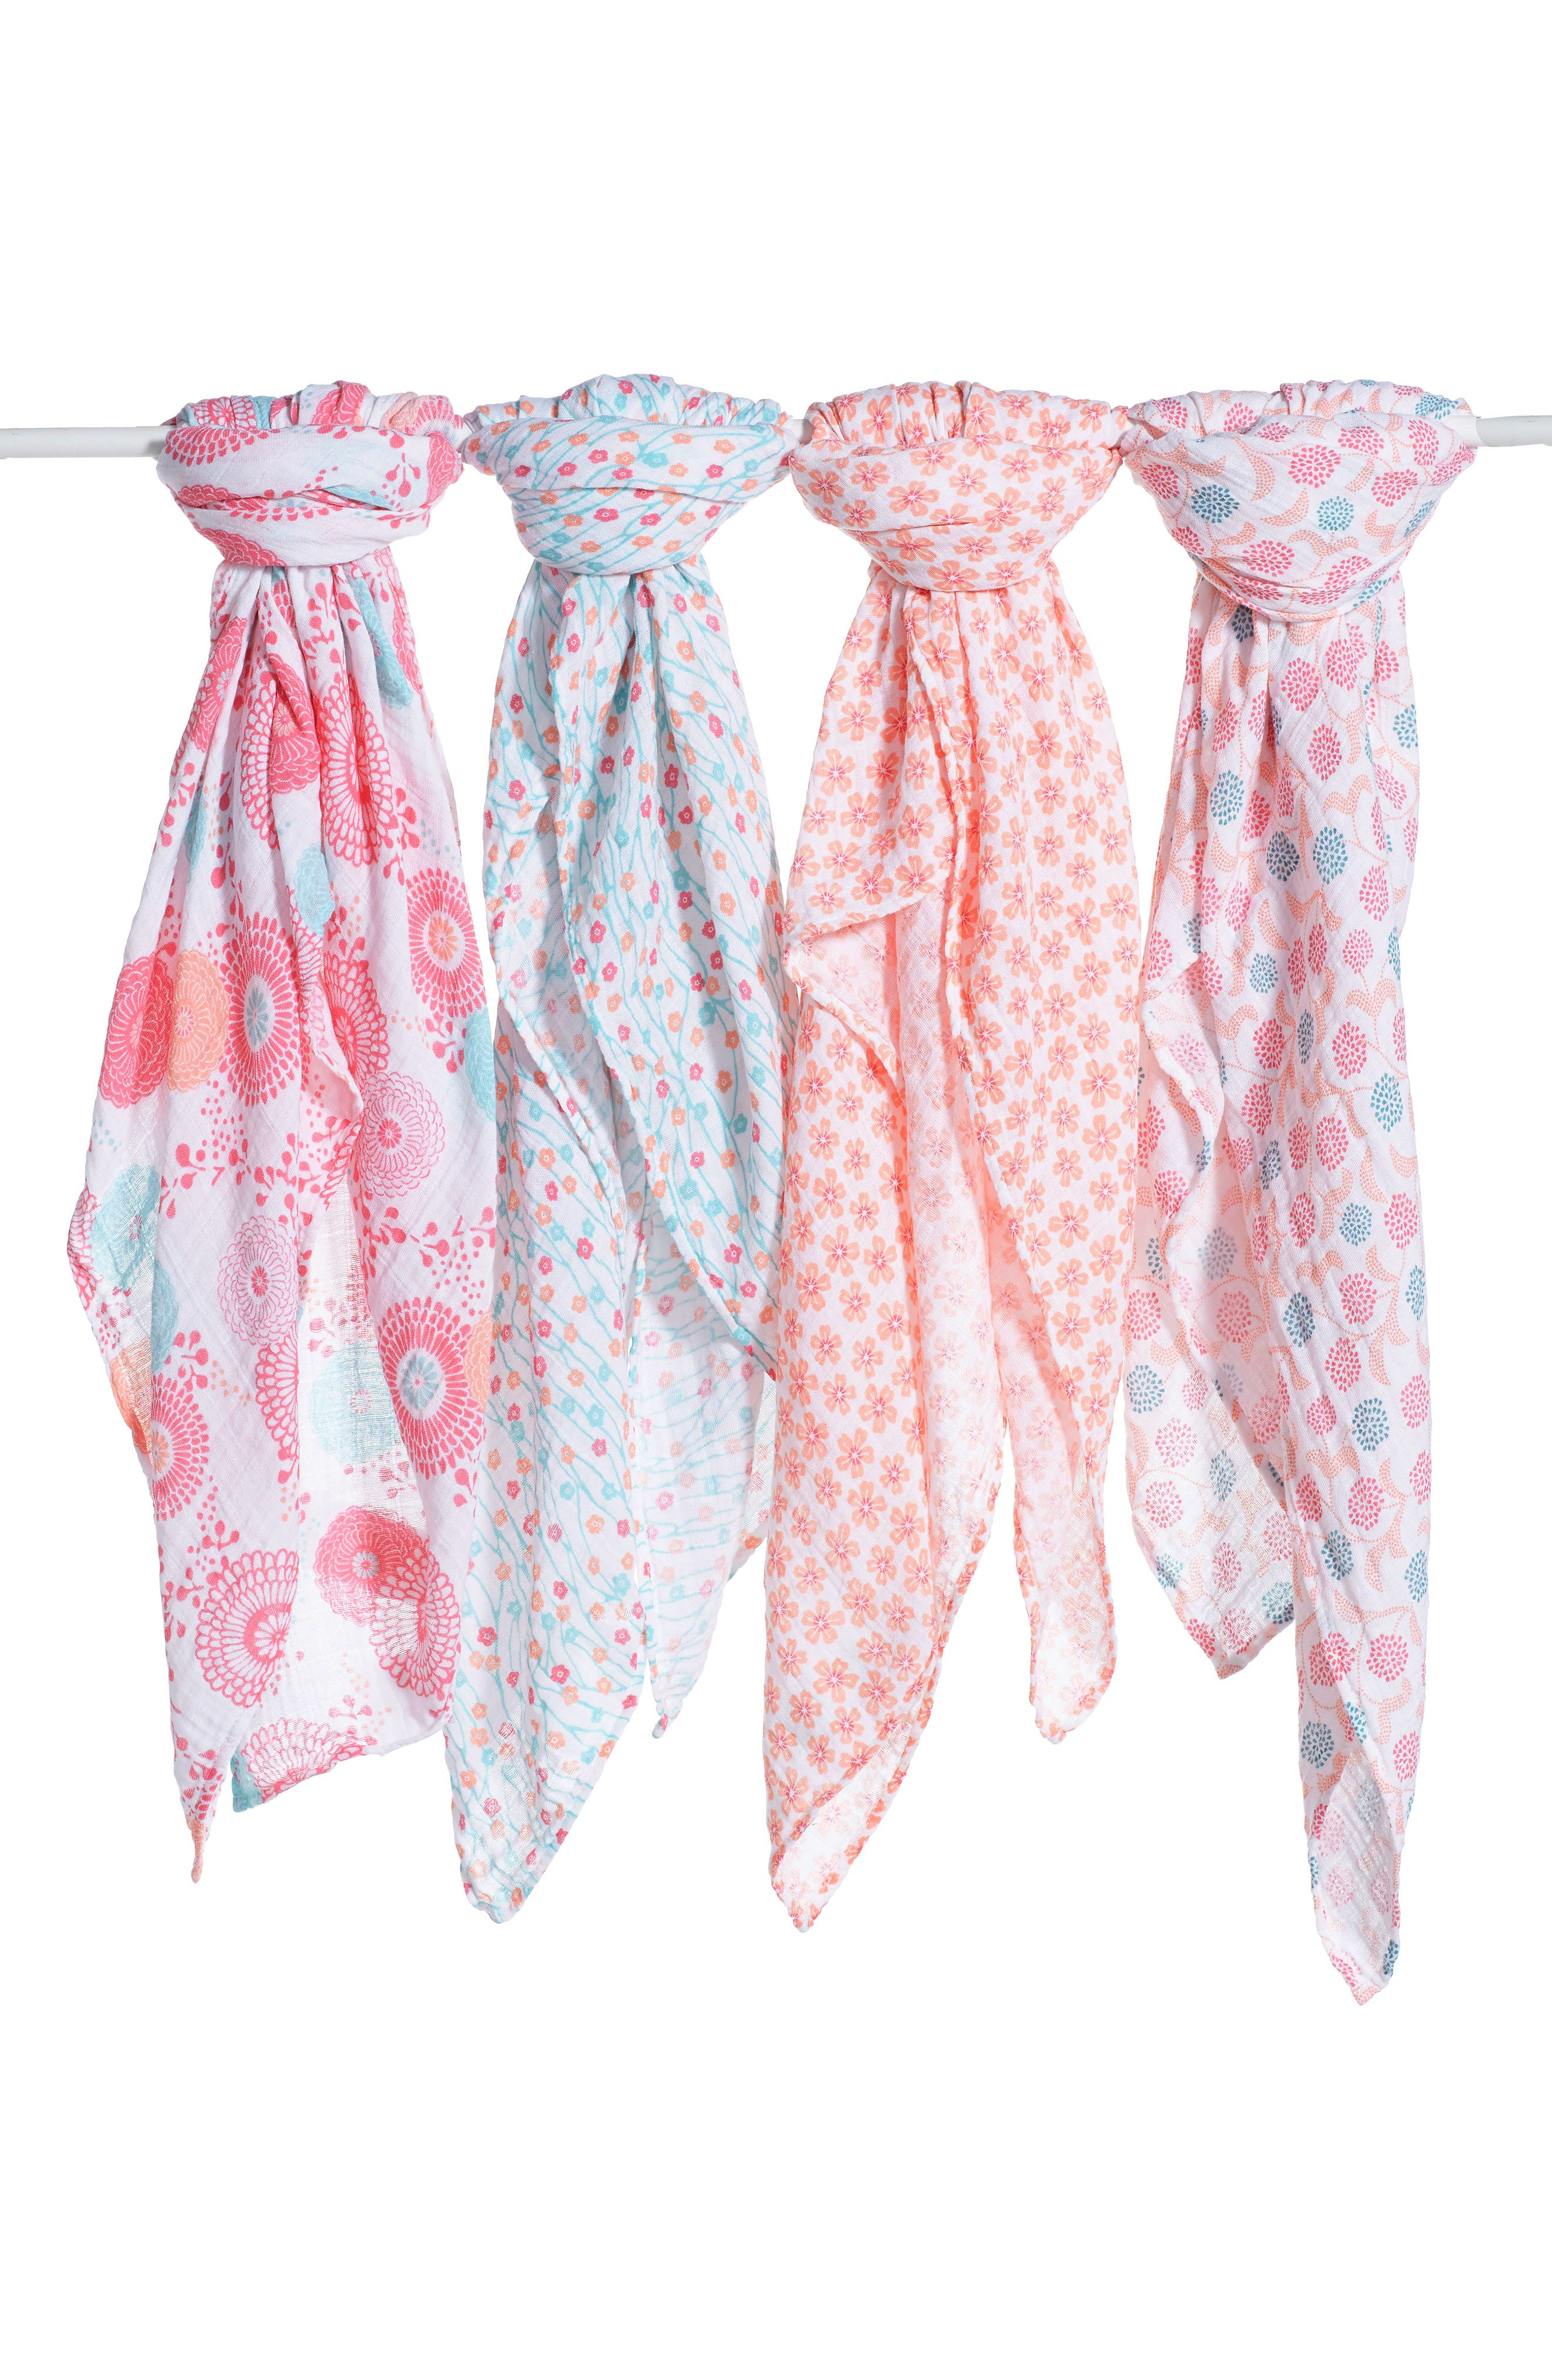 x Tea Collection 4-Pack Swaddling Cloths,                         Main,                         color, GLOBAL GARDEN